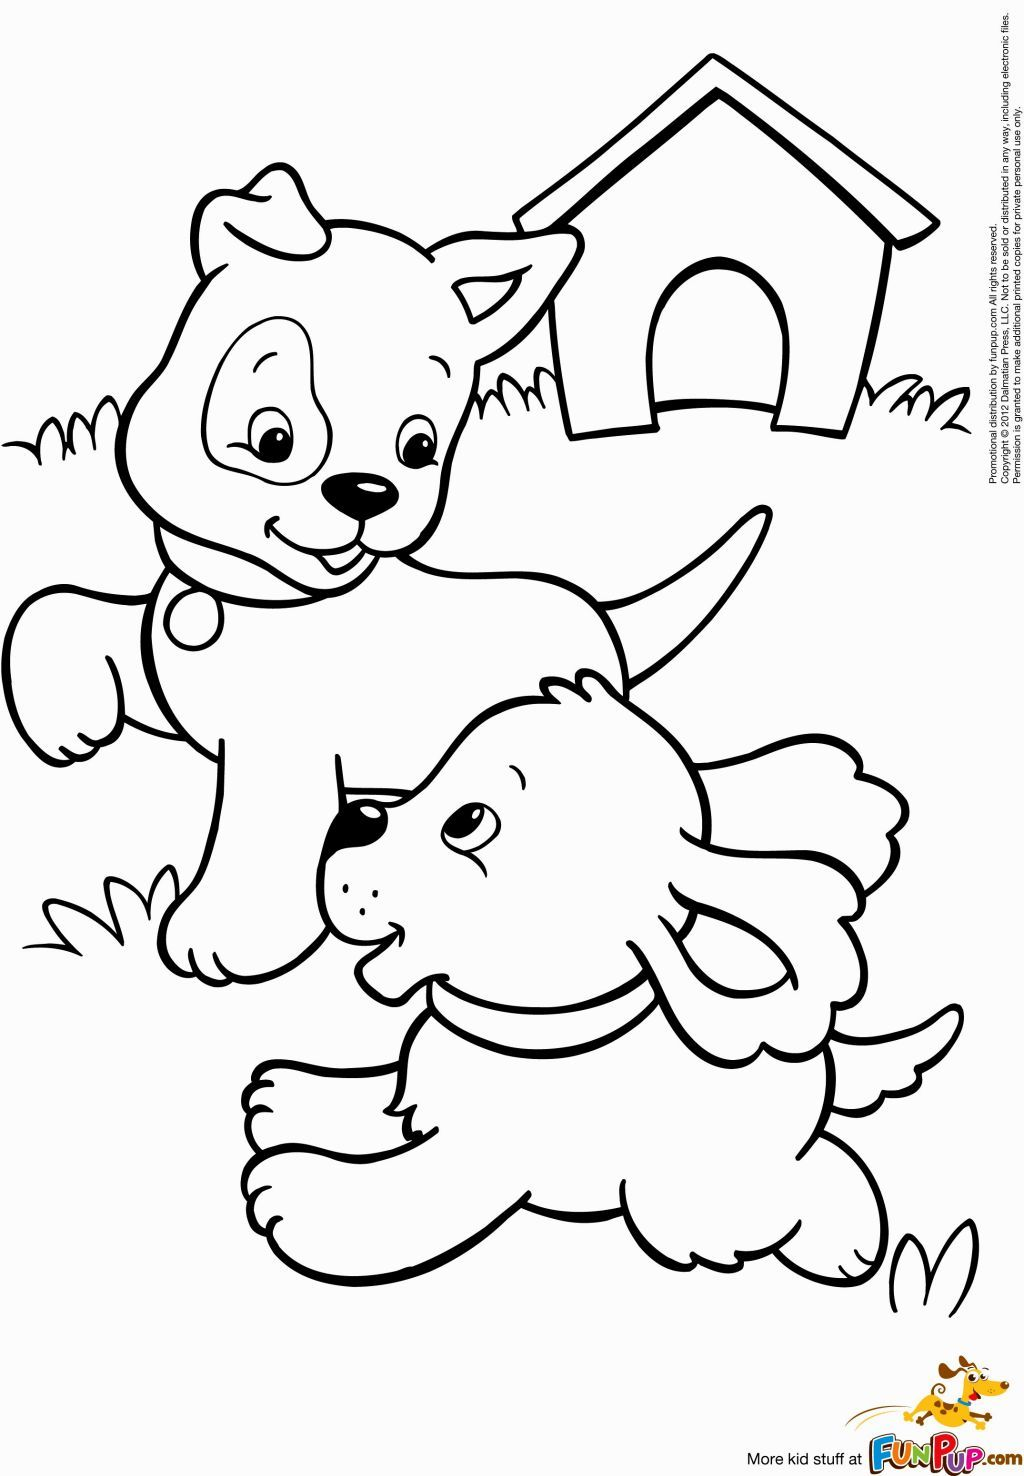 Printable Coloring Pages Of Puppies | Coloring Pages | Pinterest ...